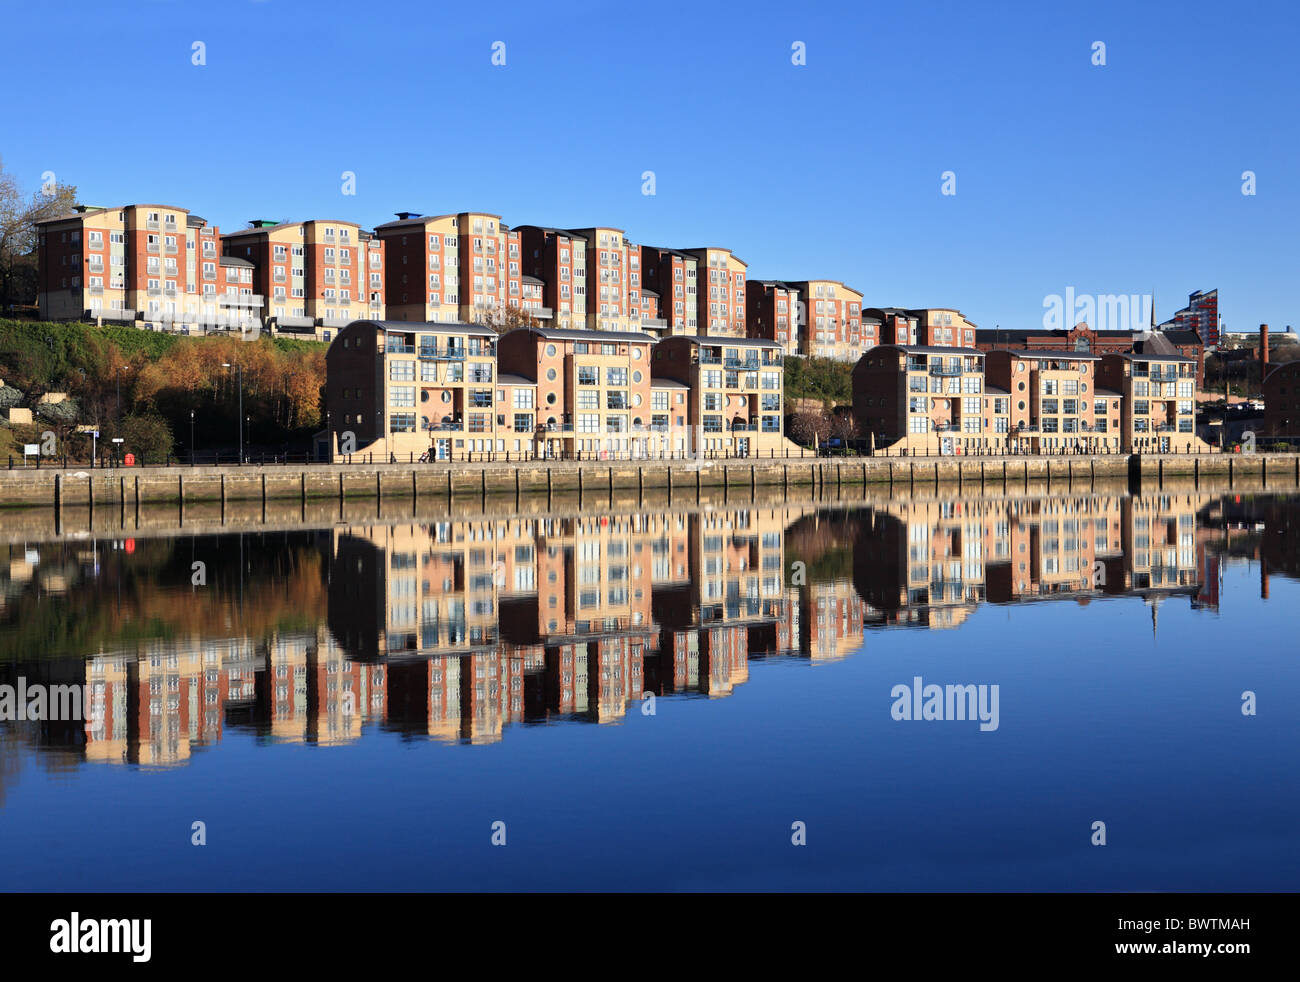 Residential properties reflected in the River Tyne, Newcastle, England, UK Stock Photo